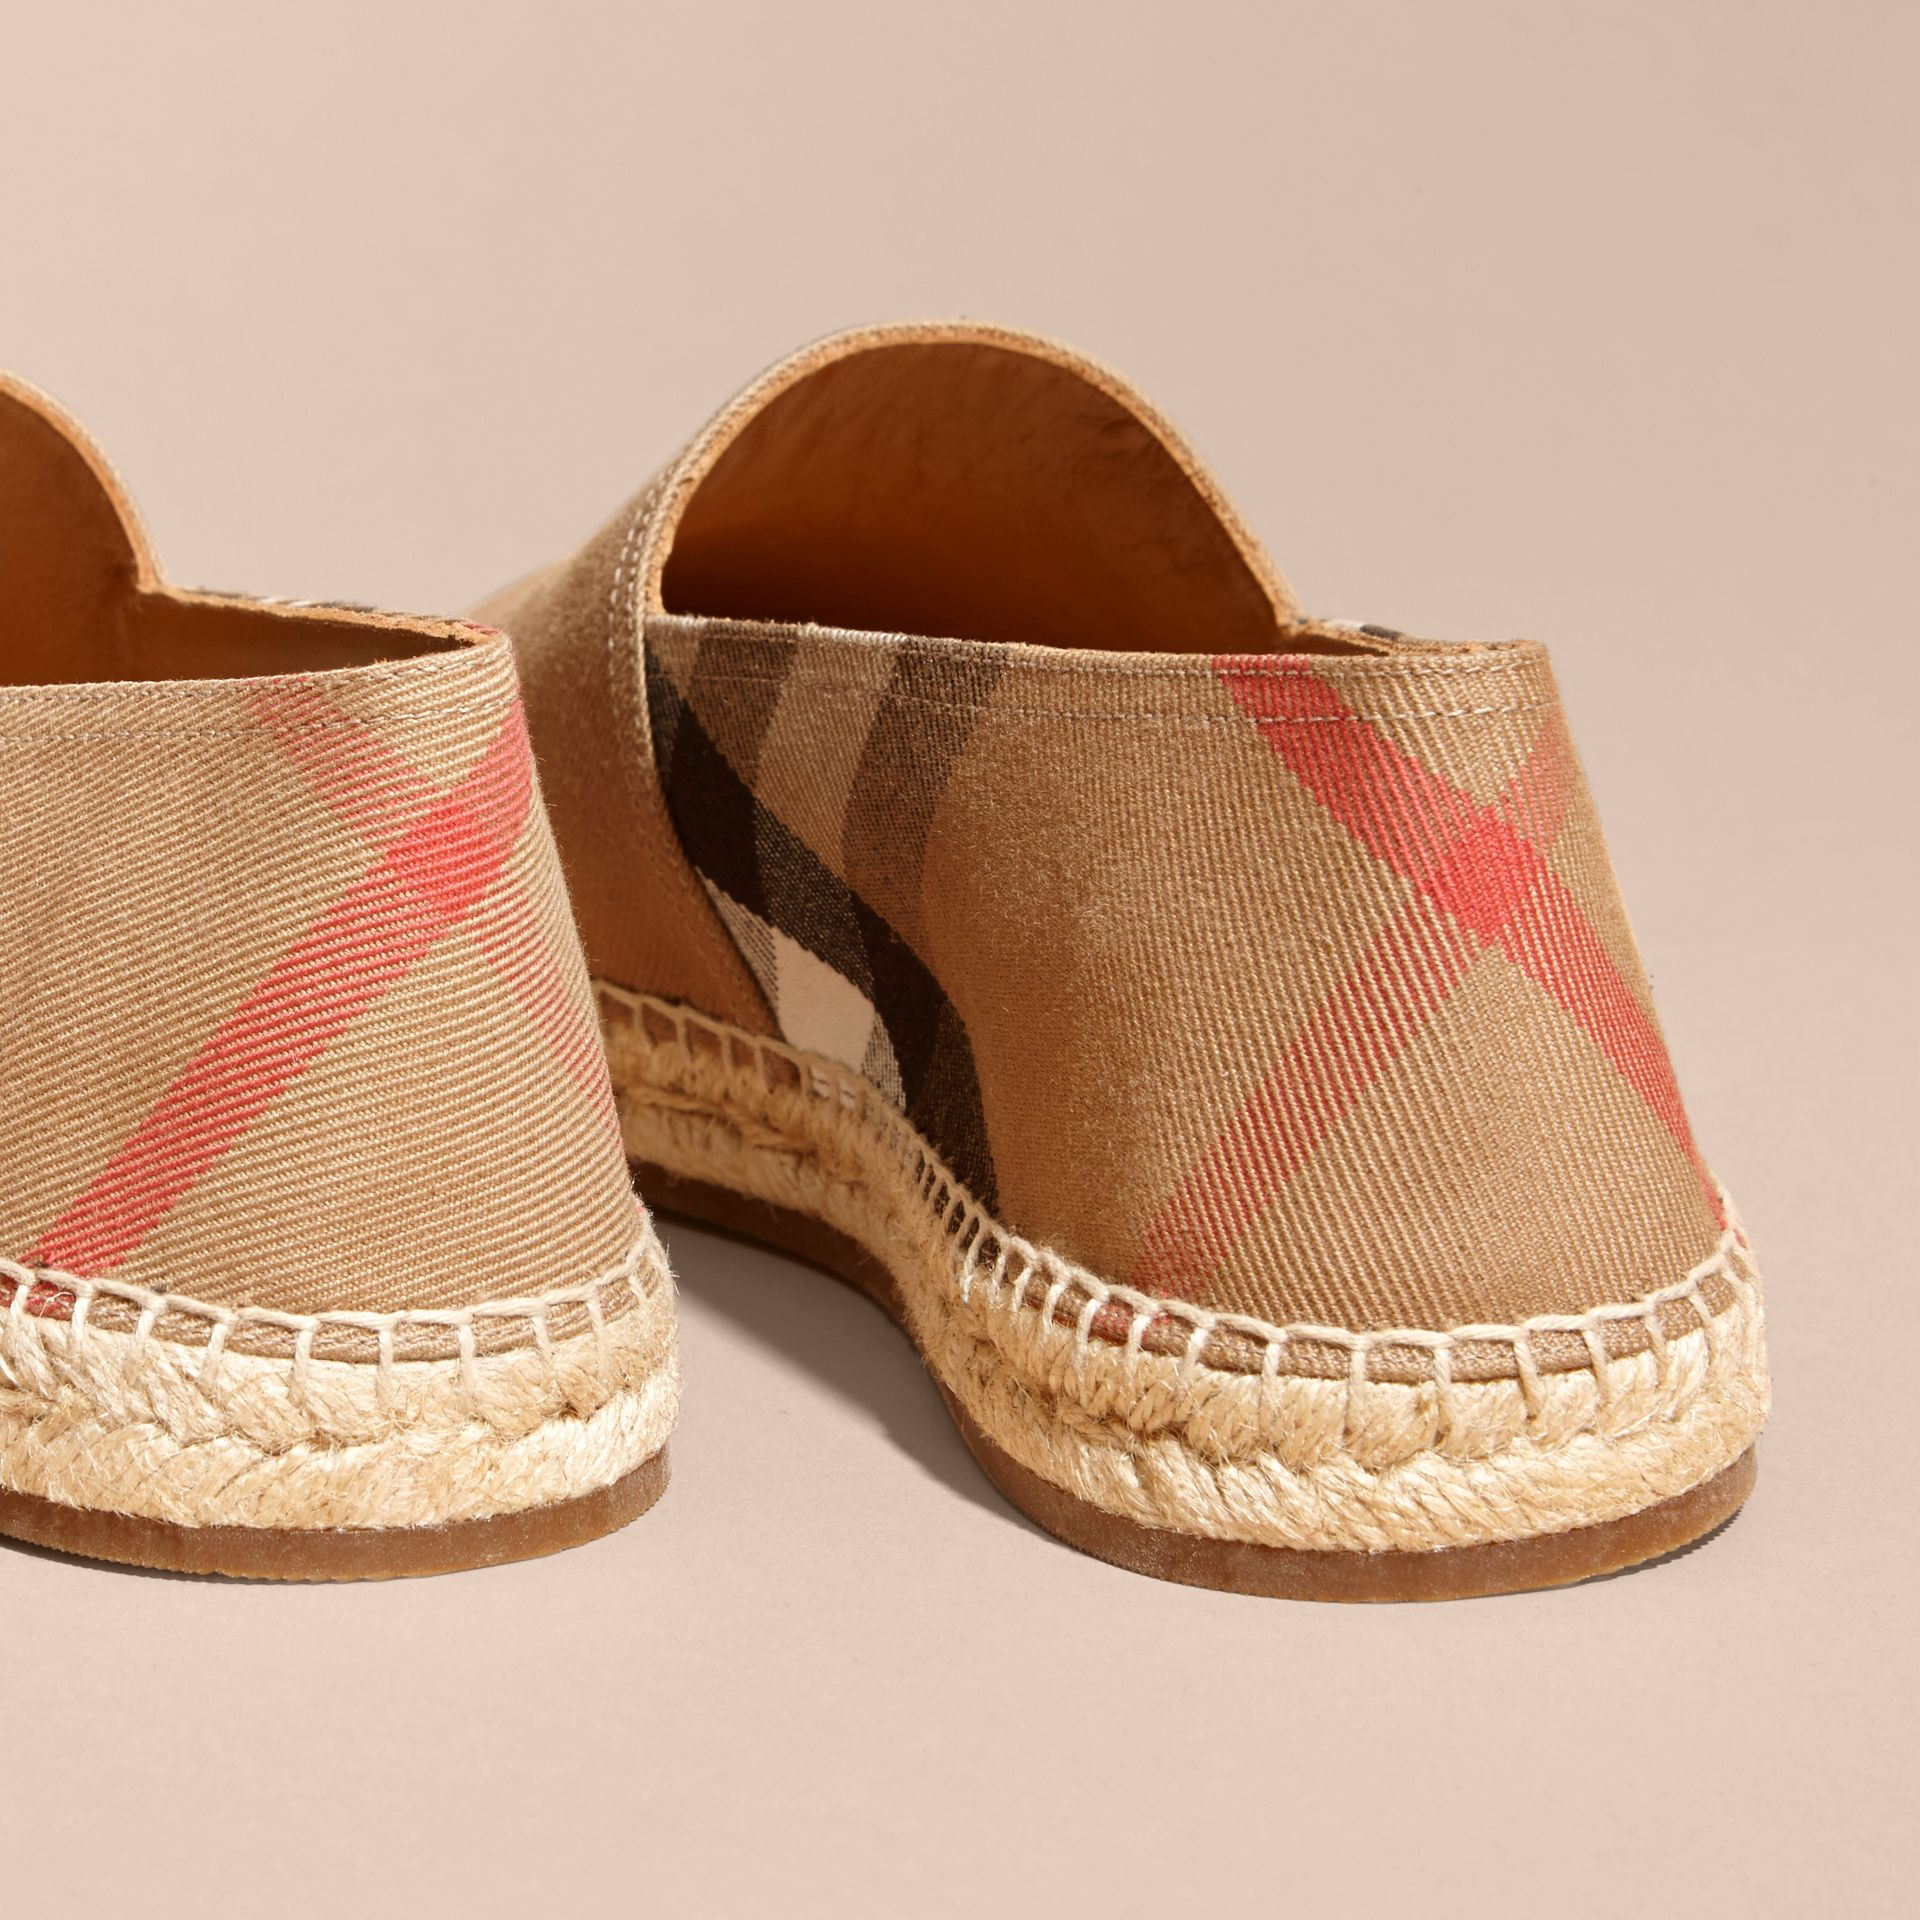 Canvas Check Espadrilles in Classic - Men | Burberry - gallery image 4